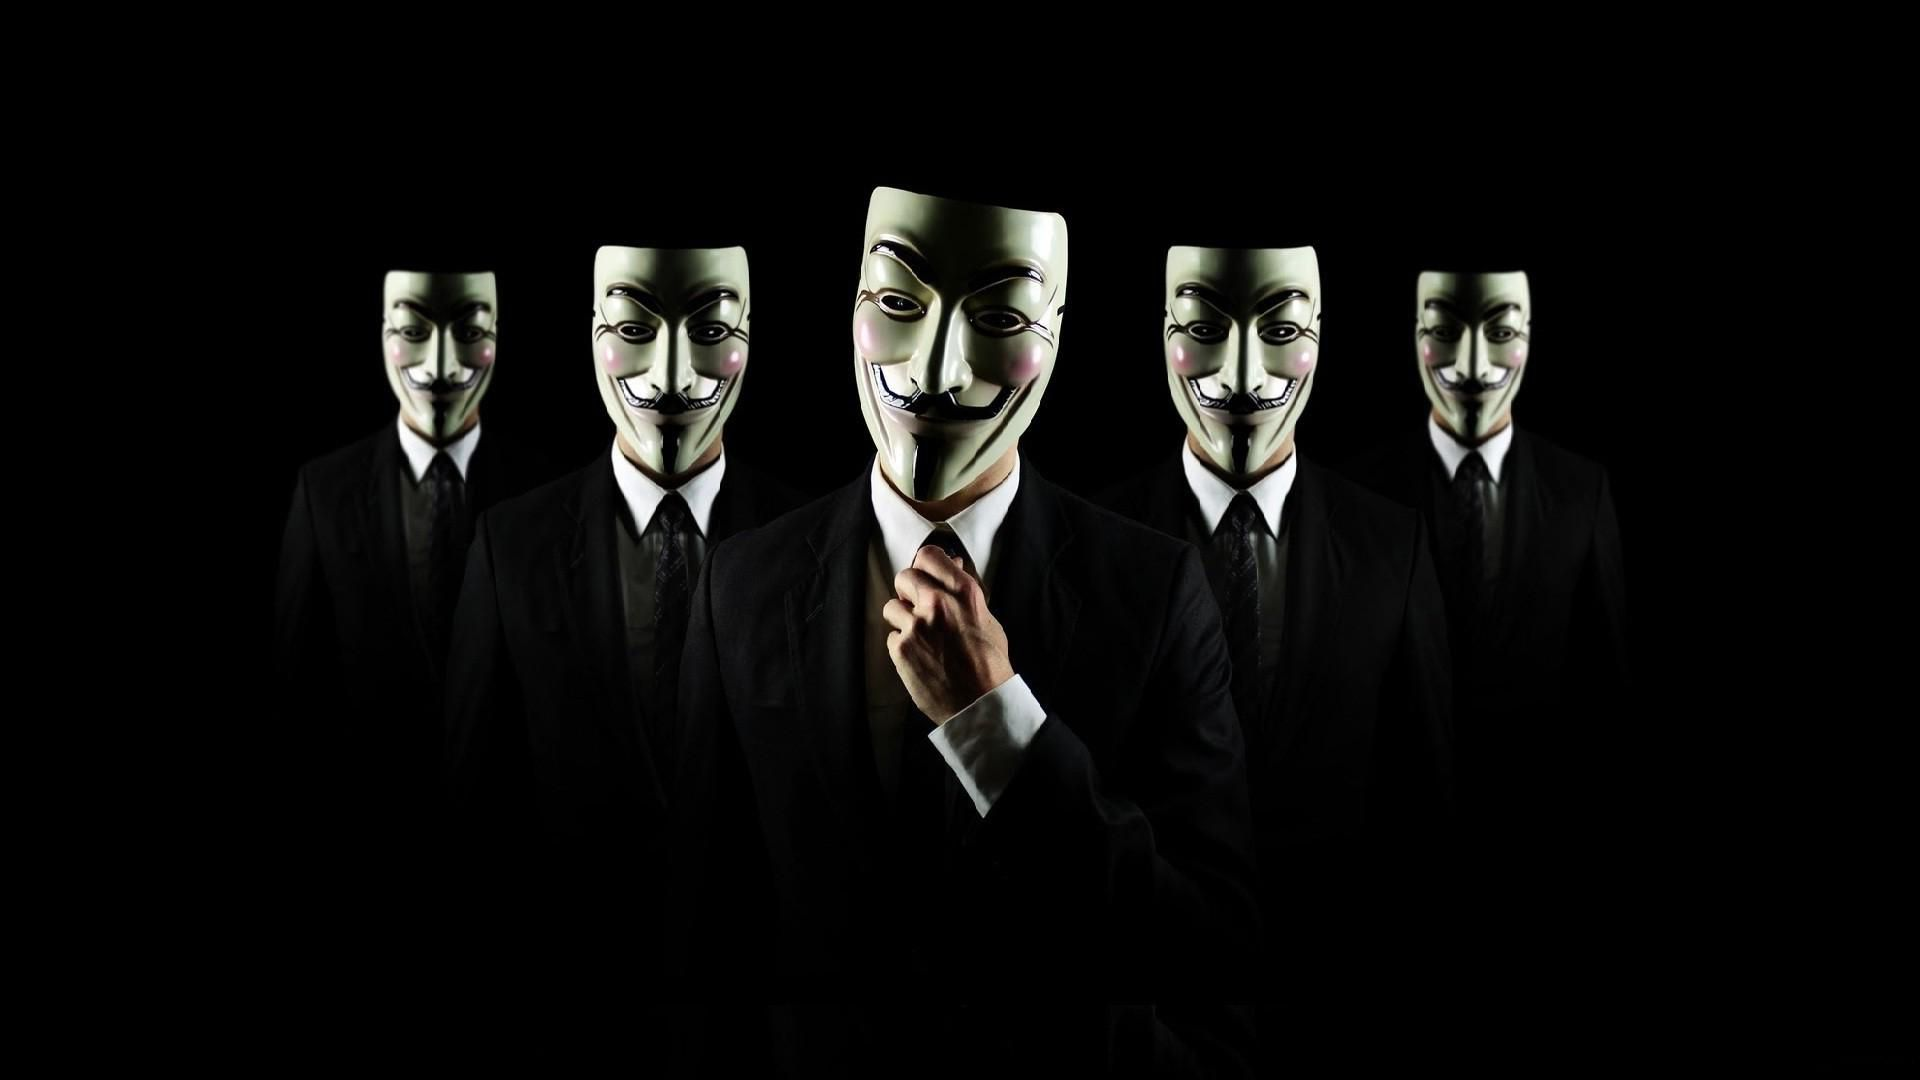 V for Vendetta HD Wallpapers HD Wallpapers available in different